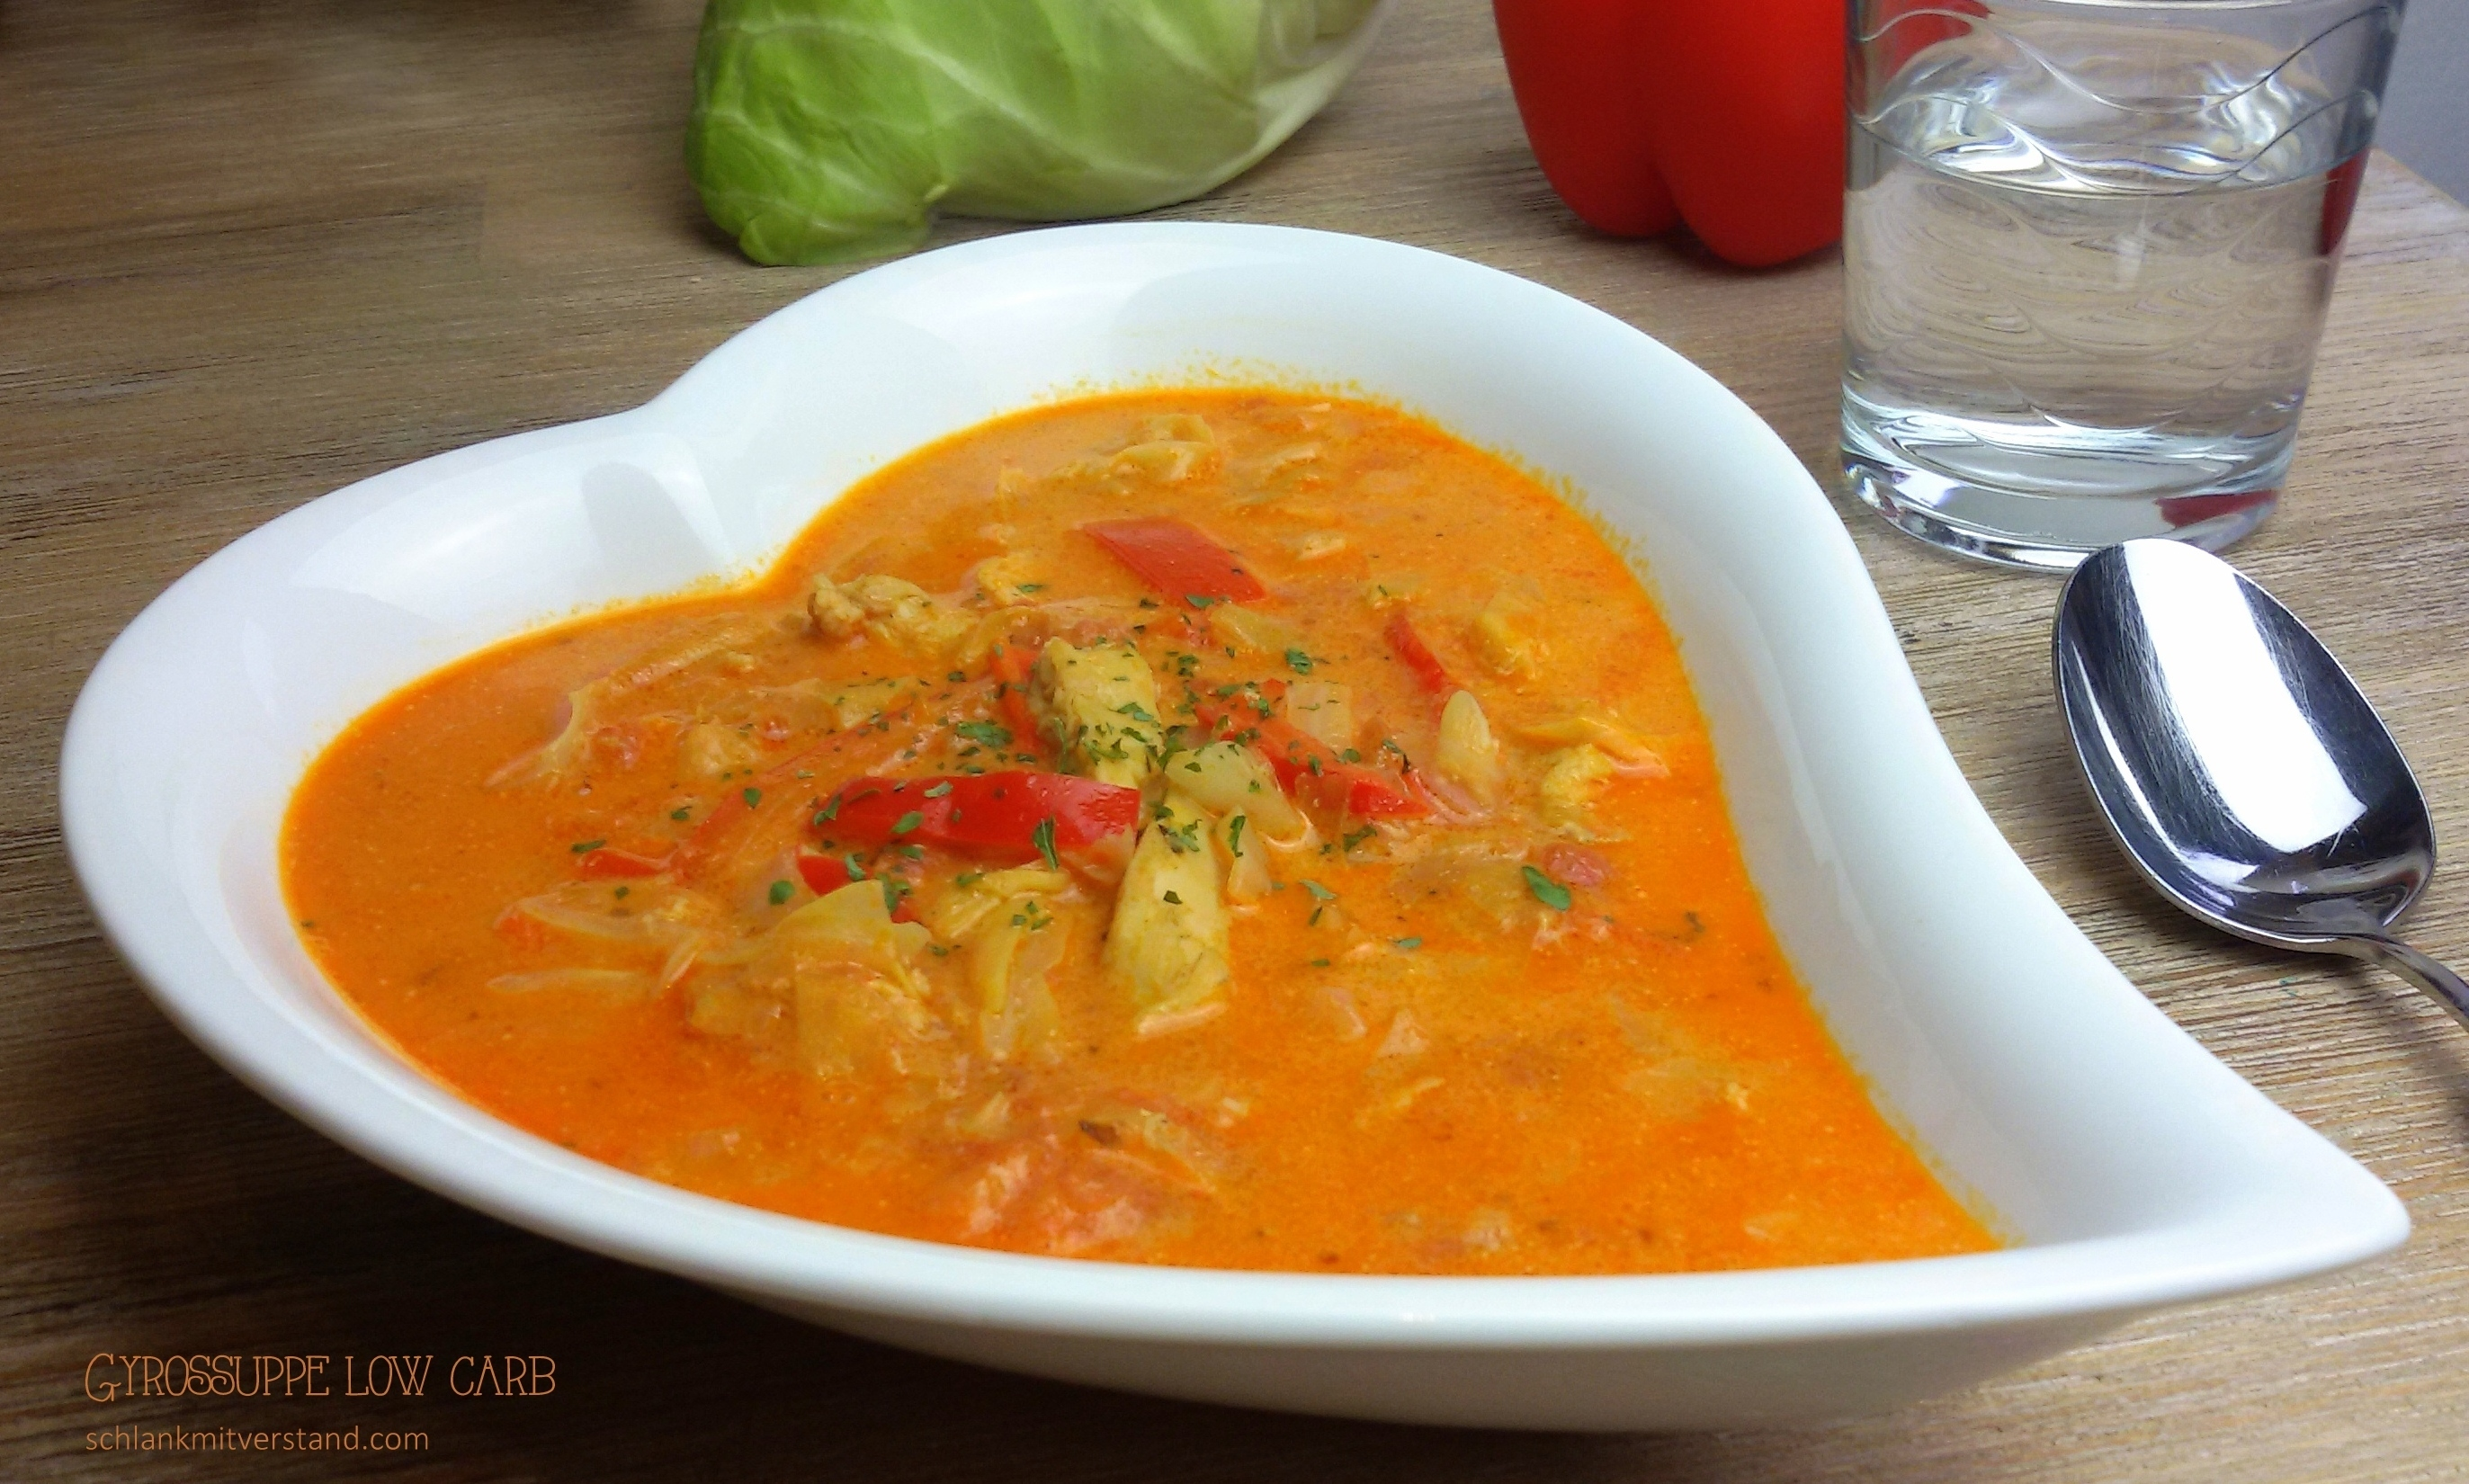 Gyrossuppe low carb